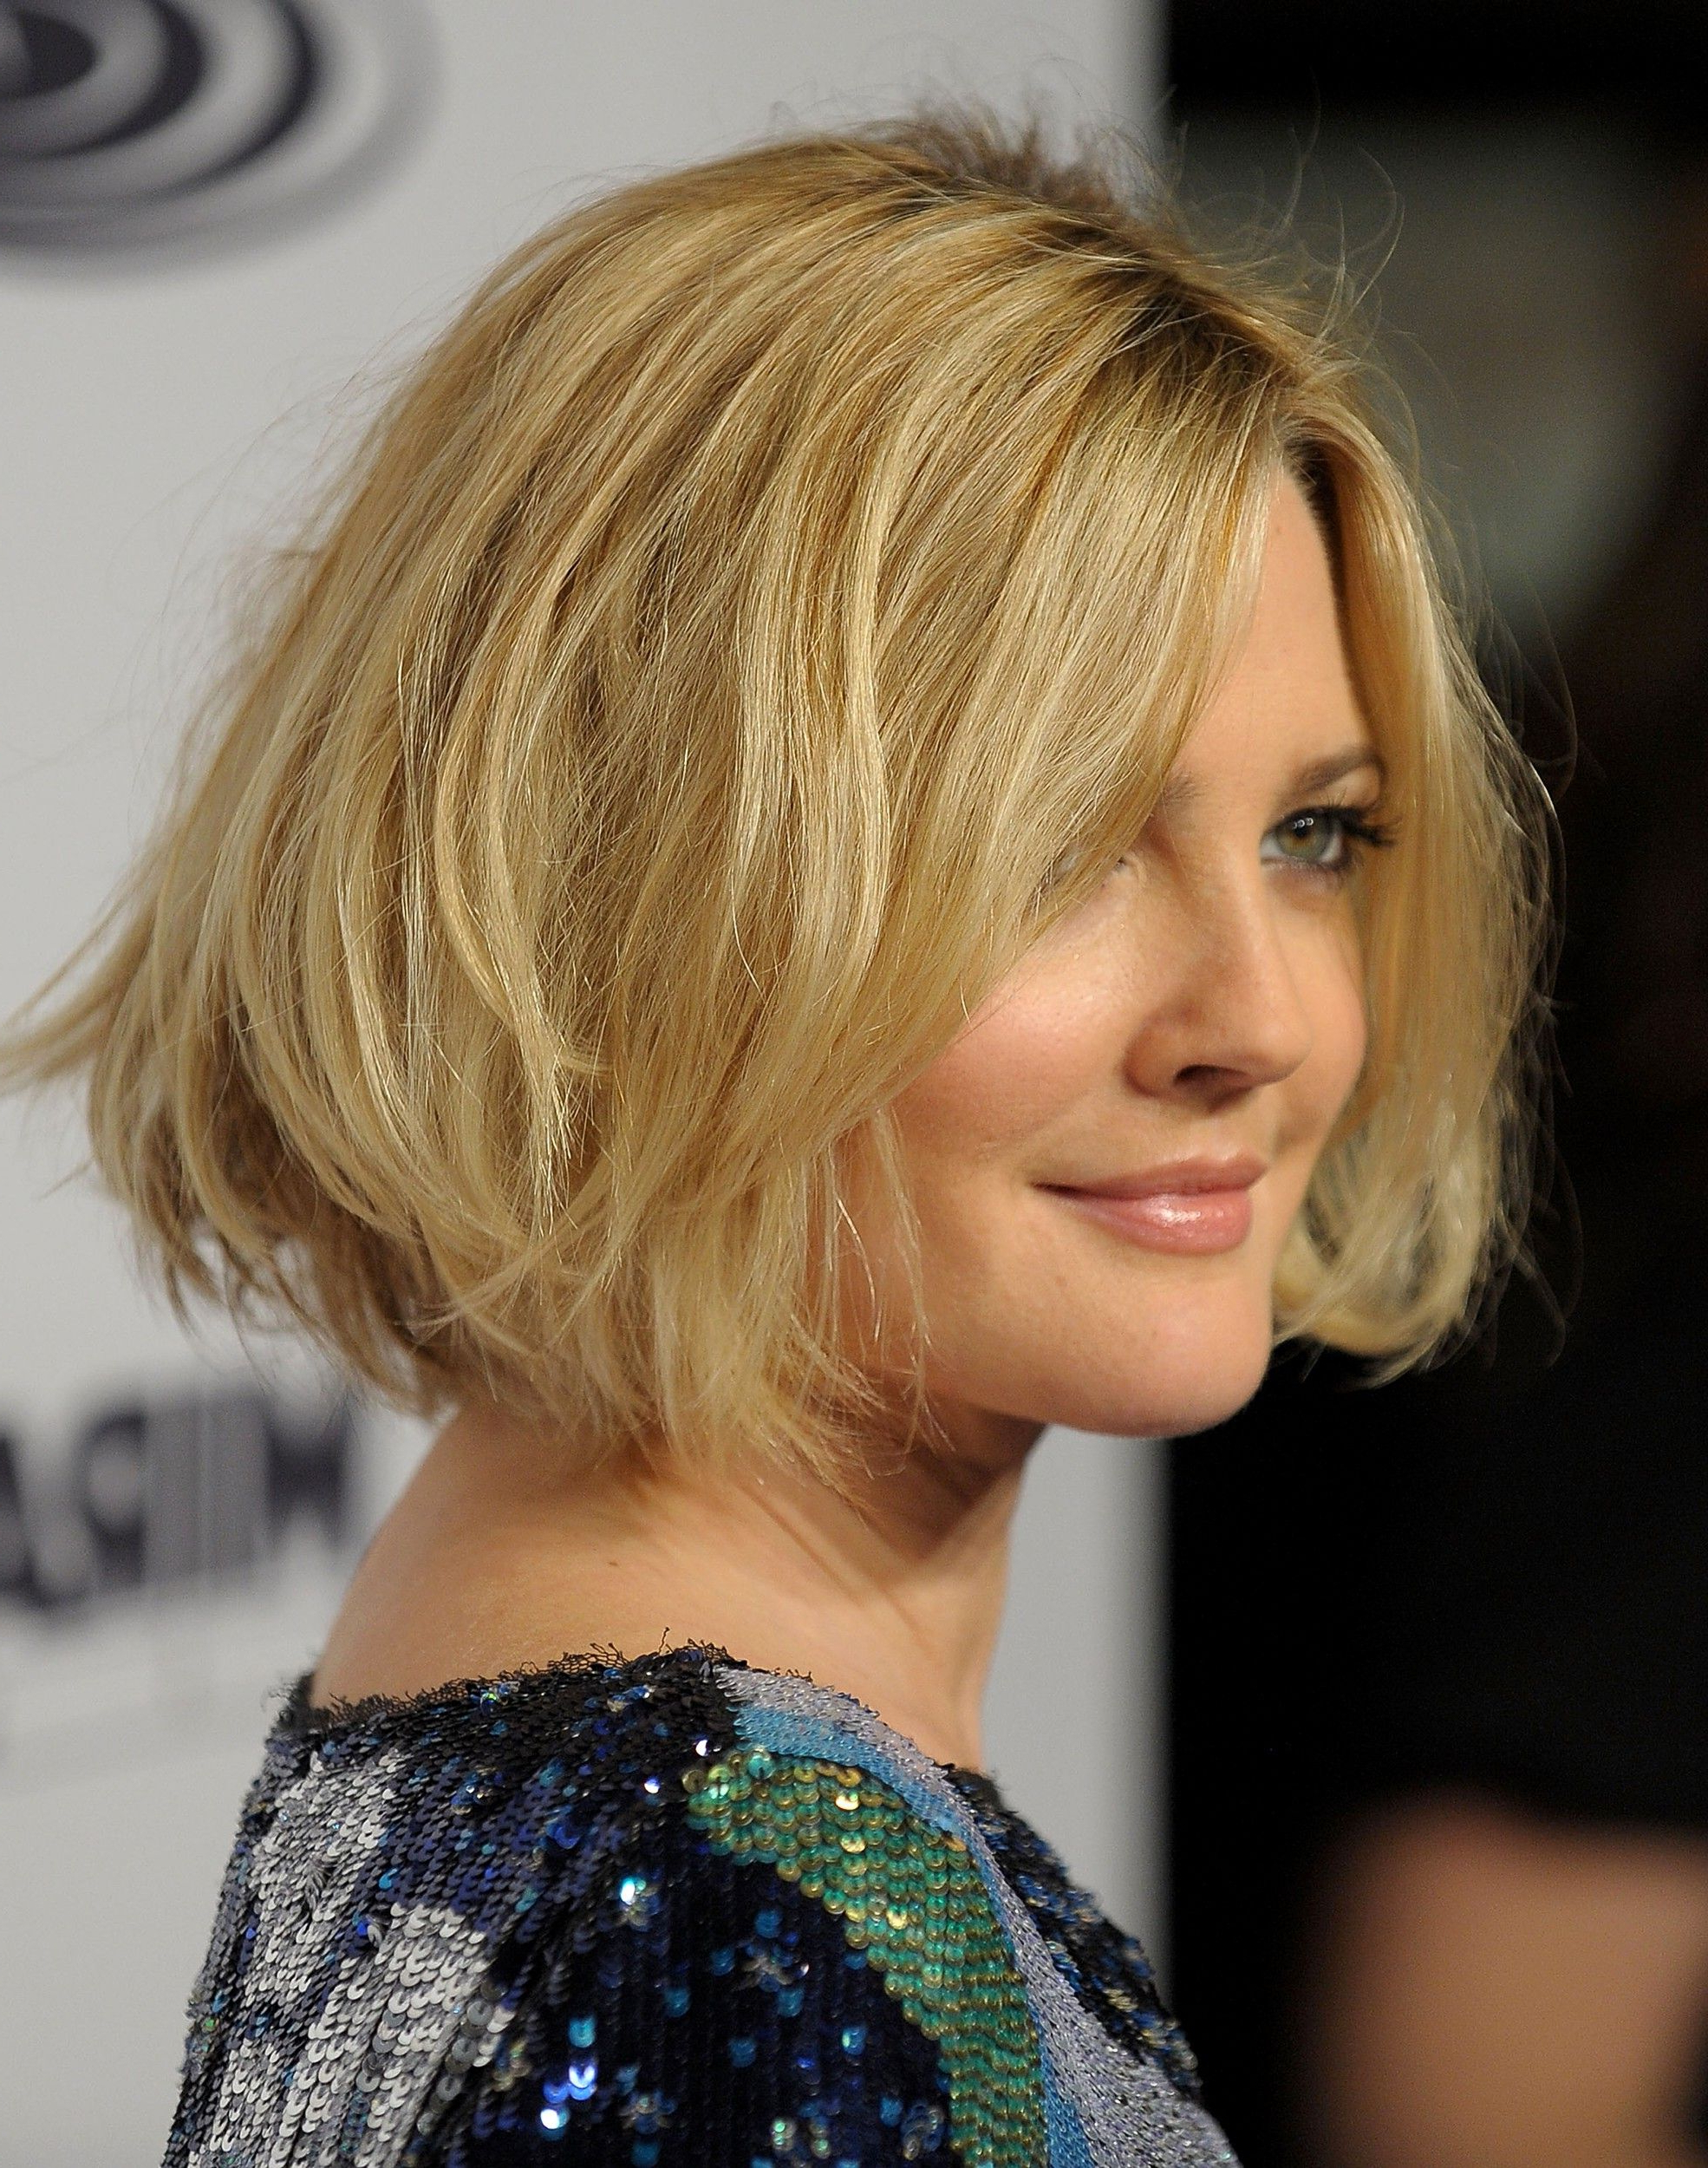 Drew Barrymore Short Hairstyle For Preferred Drew Barrymore Medium Haircuts (View 13 of 20)